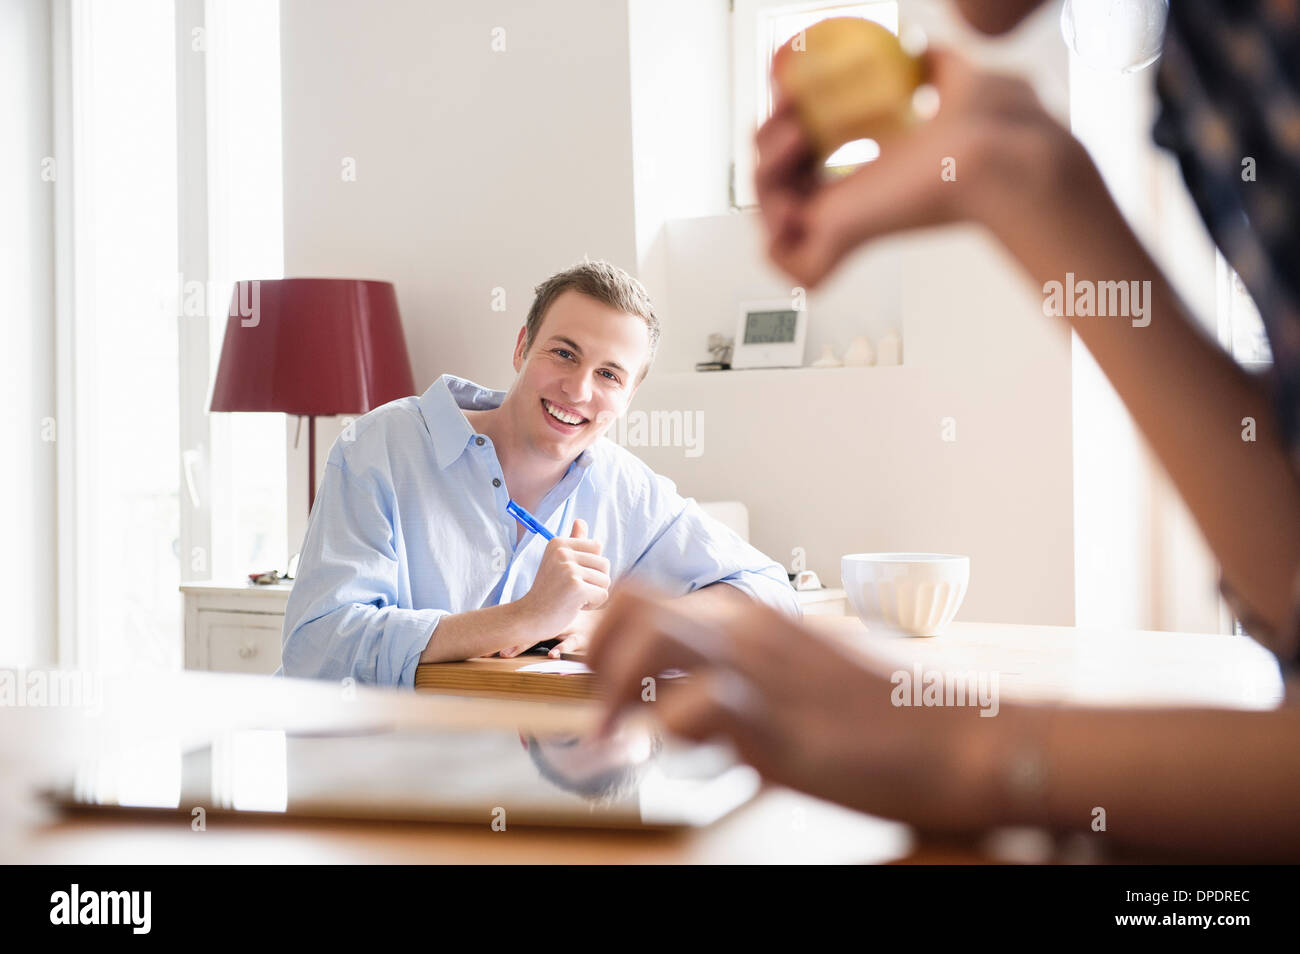 Young man seated smiling at a young woman eating an apple - Stock Image